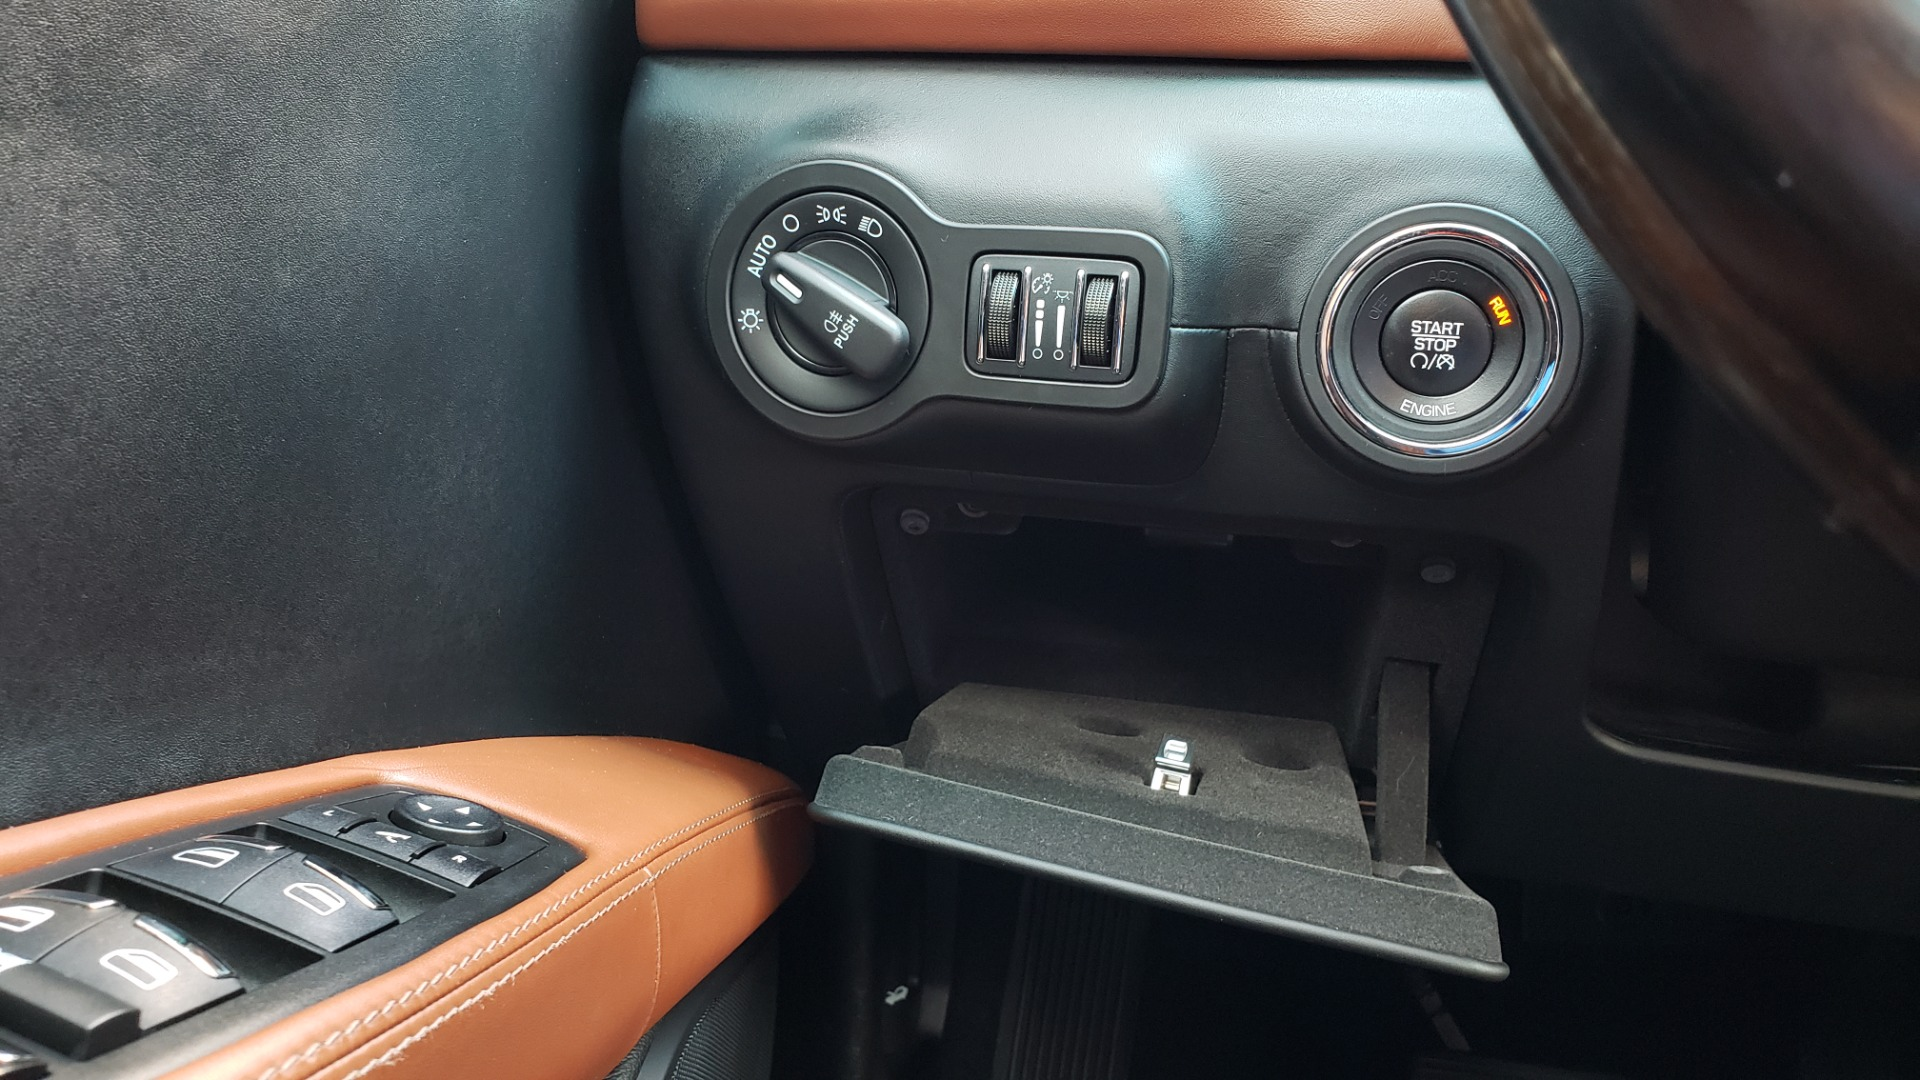 Used 2015 Maserati GHIBLI SEDAN / 3.0L V6 / 8-SPD AUTO / NAV / HTD STS / SUNROOF / REARVIEW for sale $24,495 at Formula Imports in Charlotte NC 28227 41